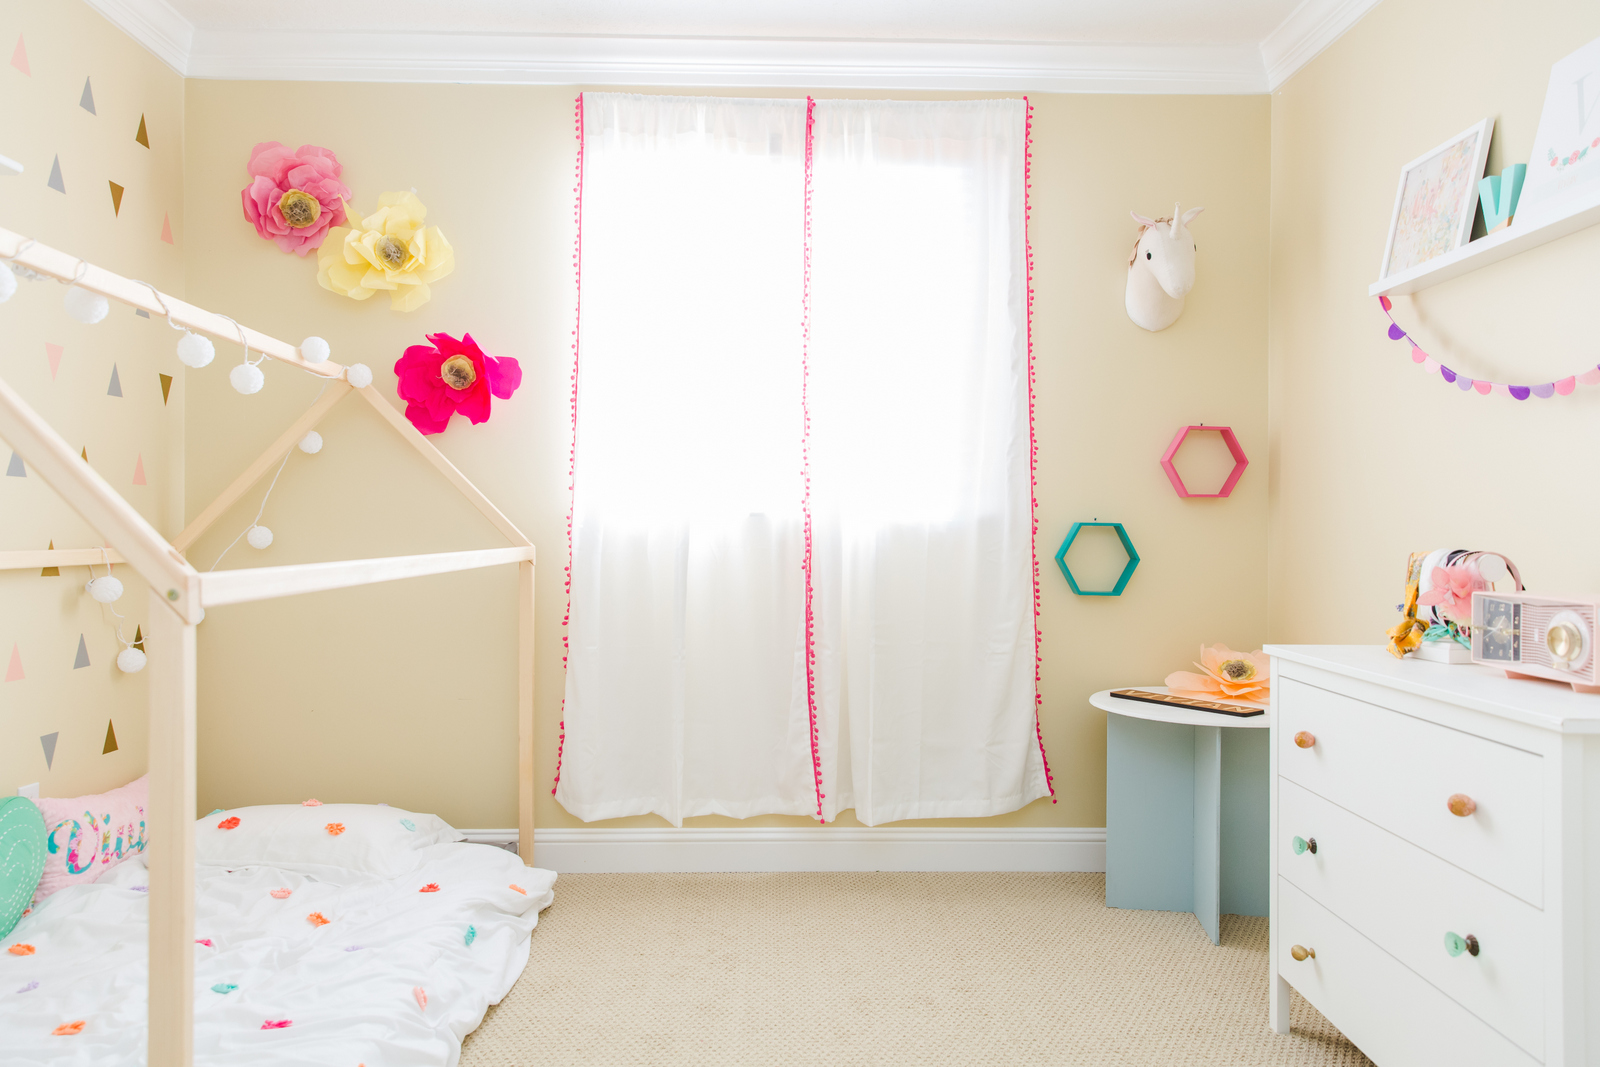 Vivian's Bedroom Reveal: Little Girls Bedroom Ideas You'll Want to Steal